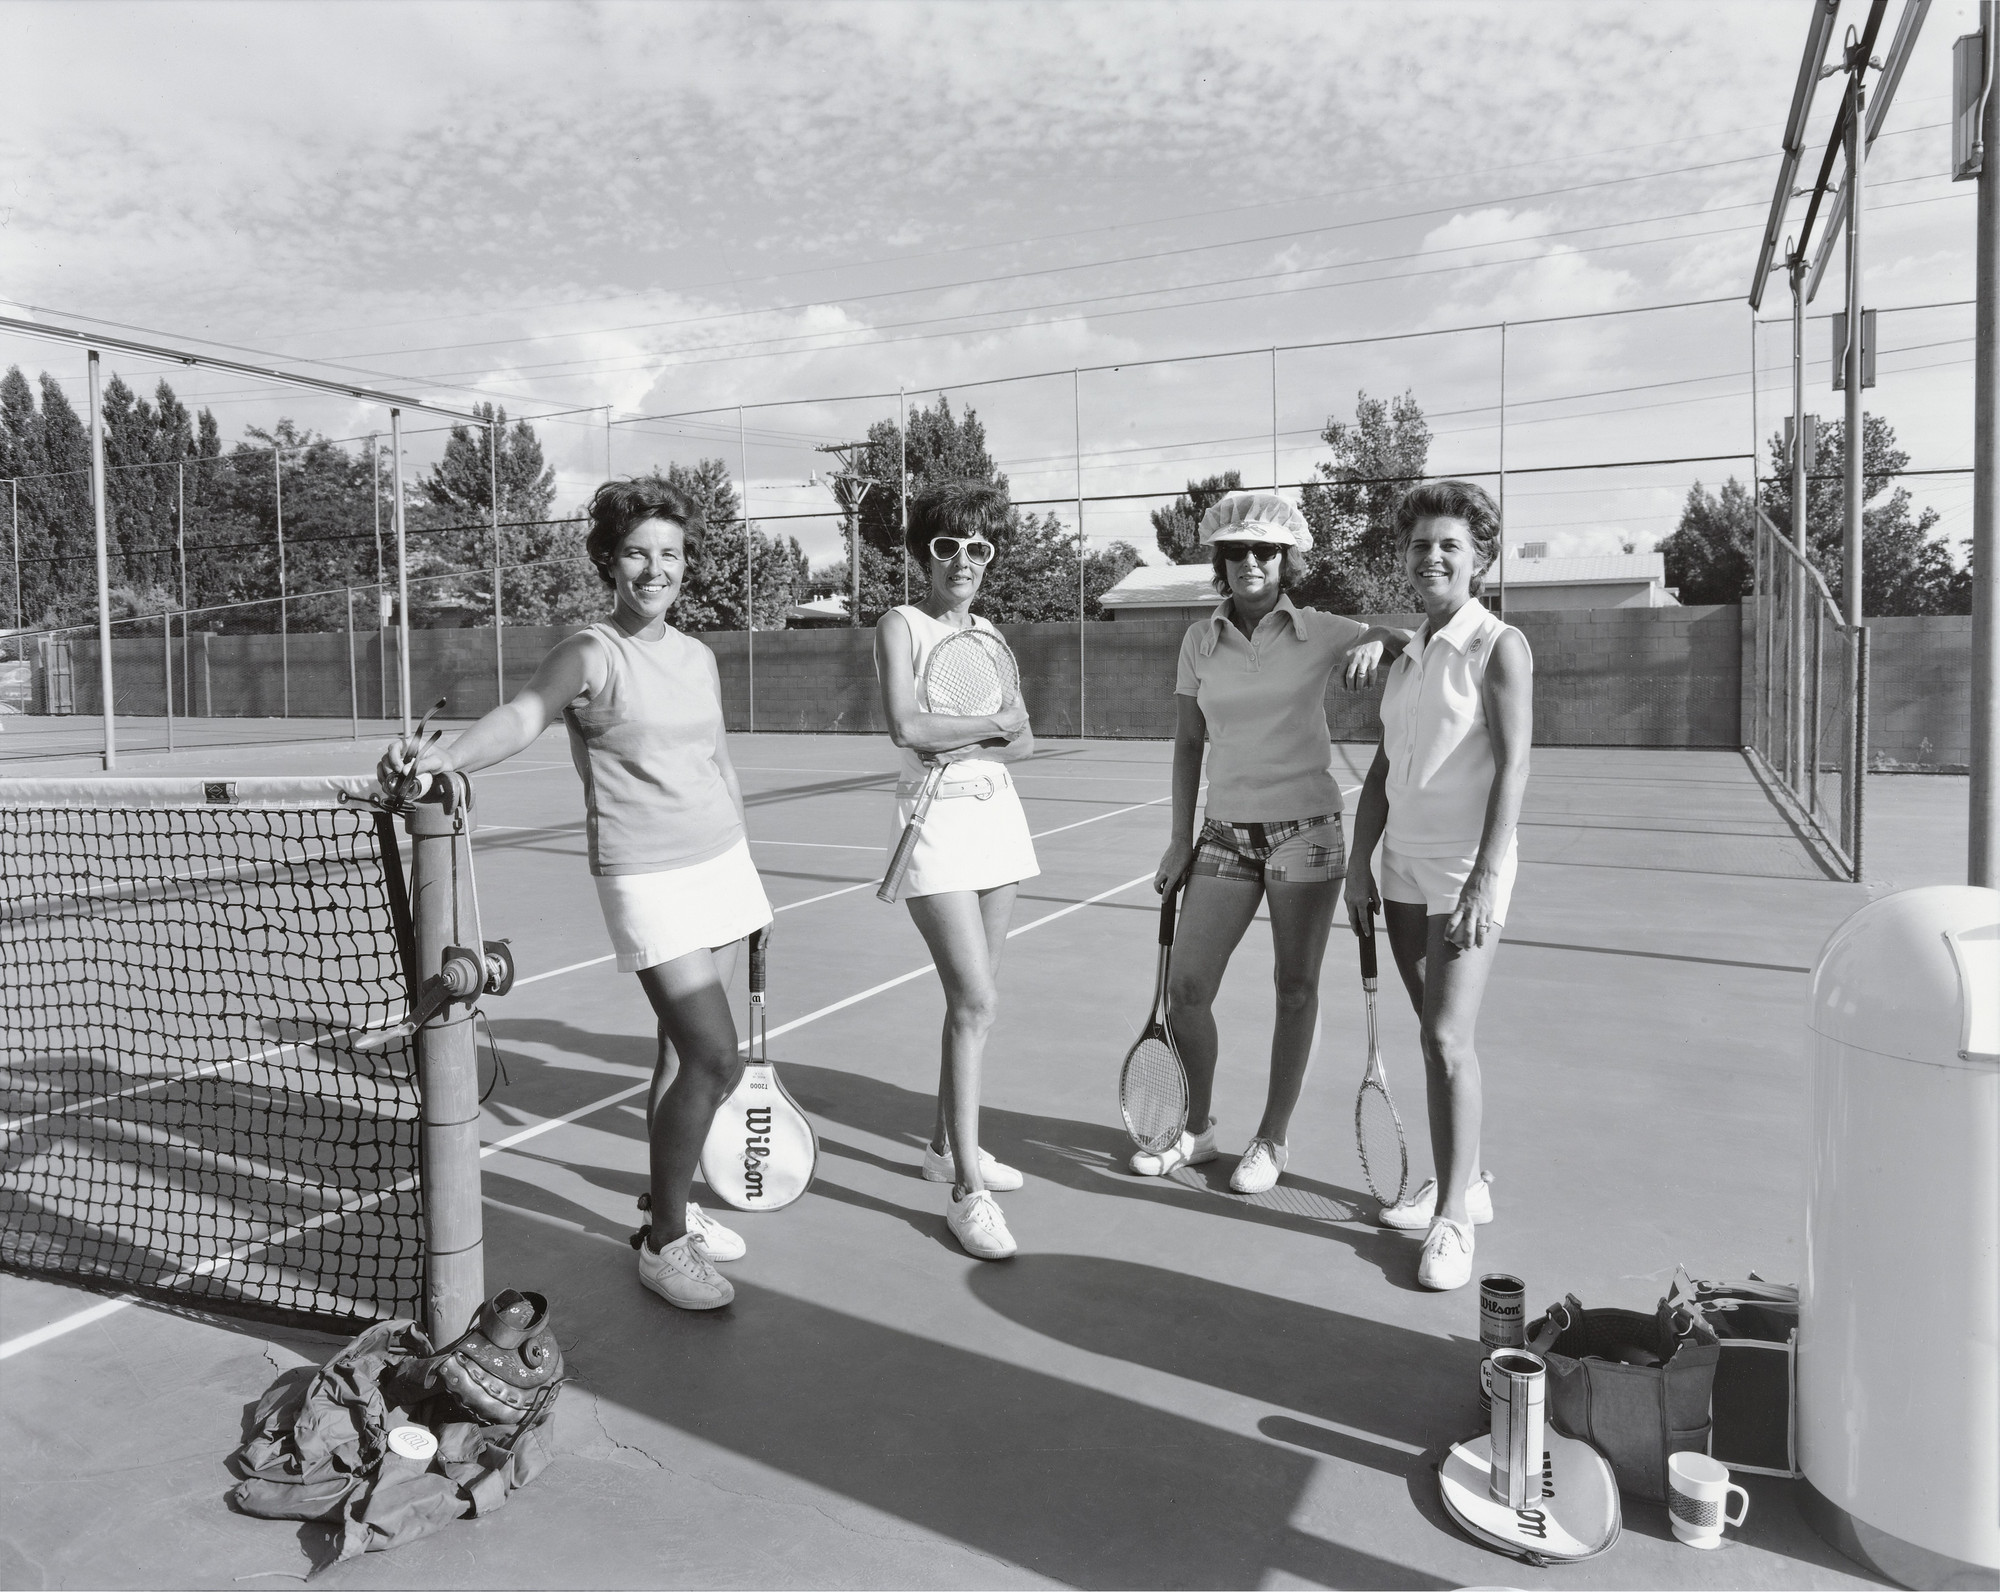 Nicholas Nixon. Mrs. Nancy Wheeler, Mrs. Becky Norman, Mrs. Jenny Bull, Mrs. Bobby Maguire, Tennis Club of Albuquerque. August 1973